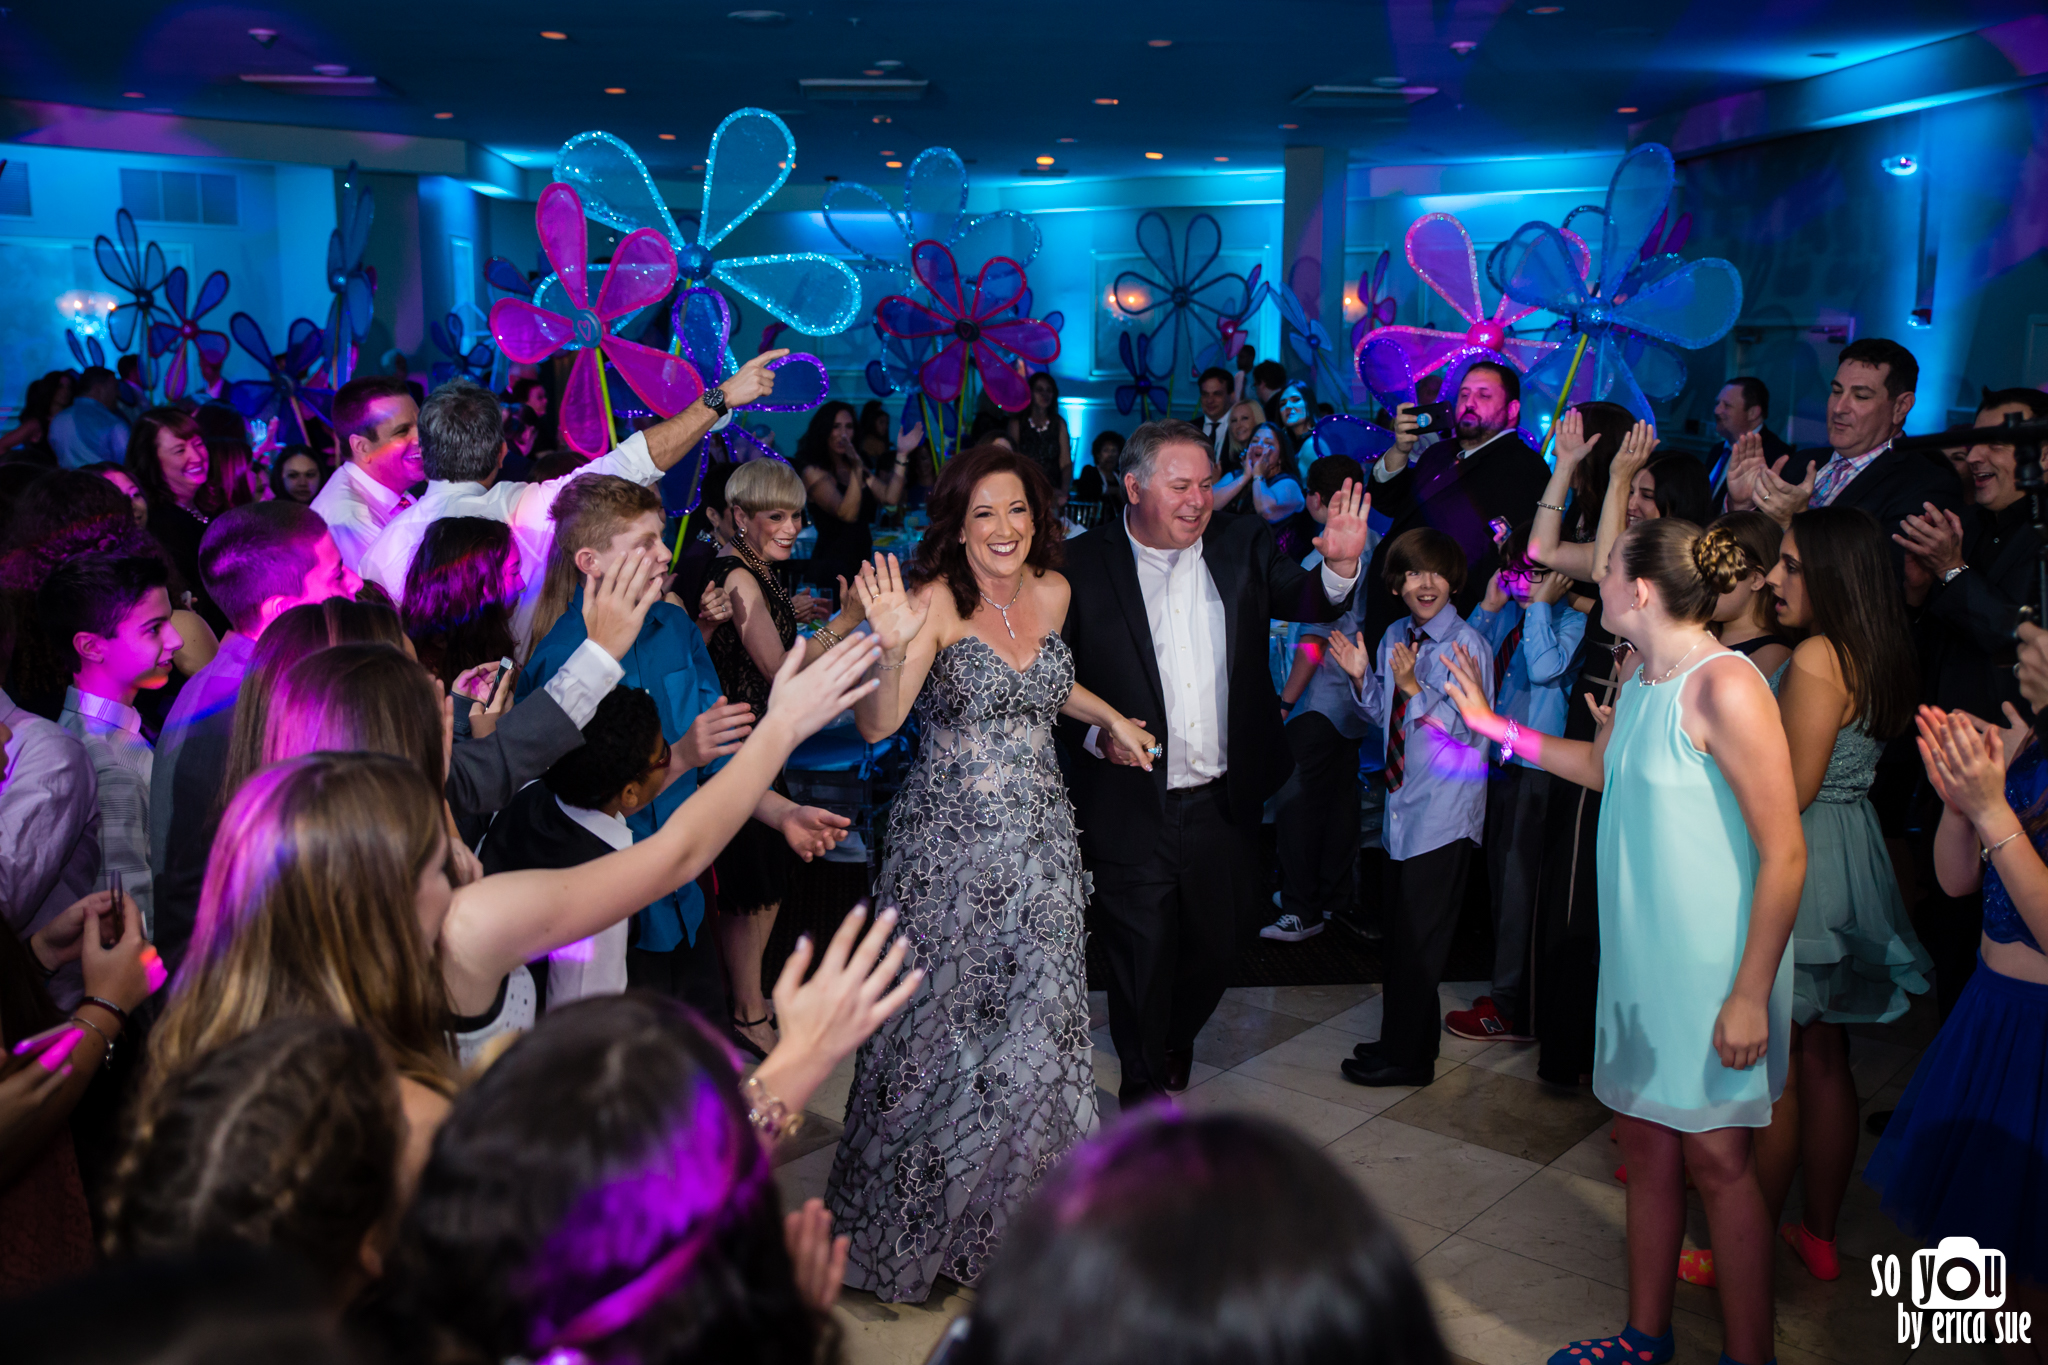 bat-mitzvah-photography-south-florida-broward-kol-ami-plantation-so-you-by-erica-sue-3324.jpg